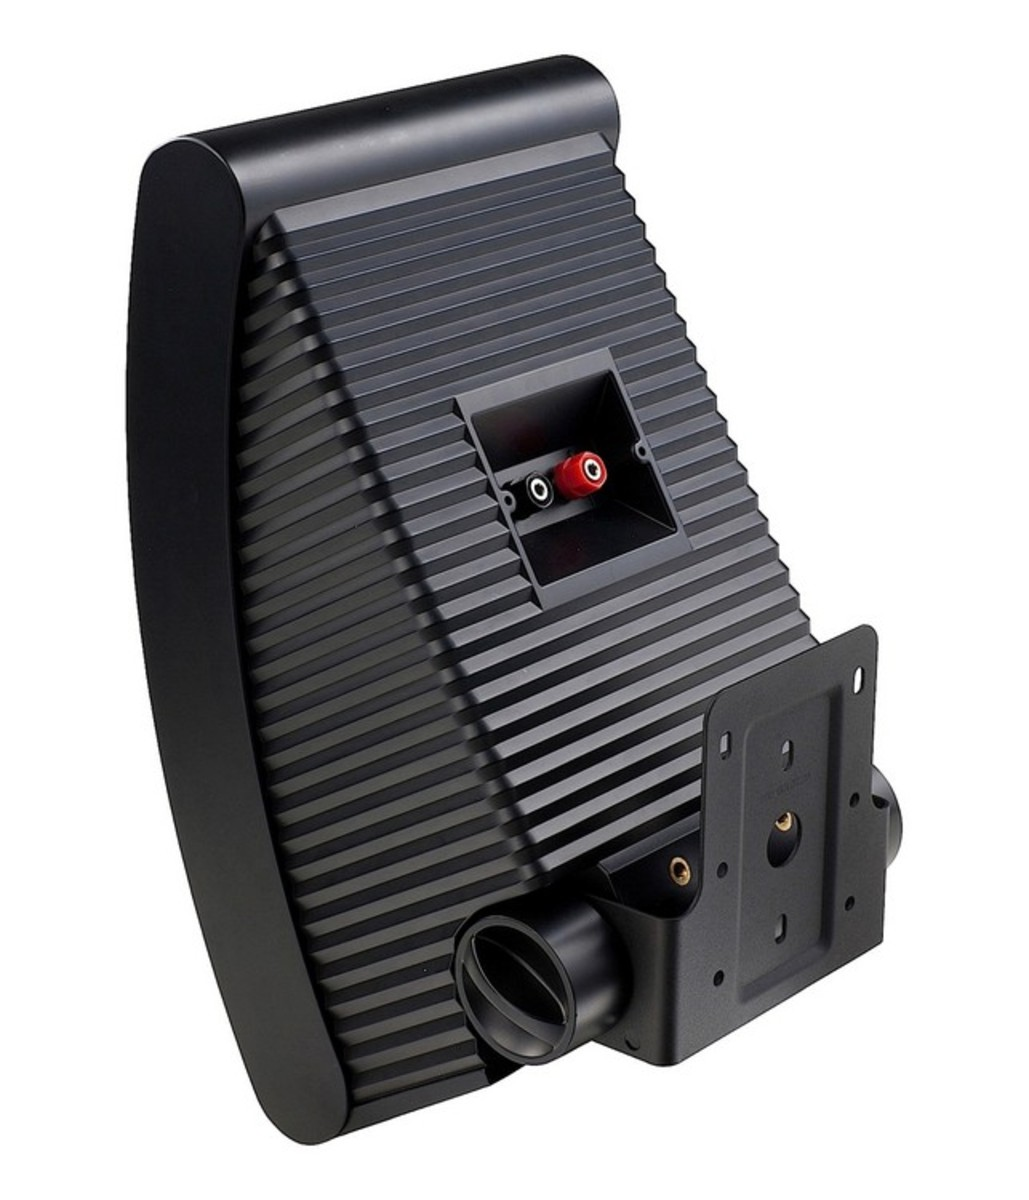 Yamaha ns aw392 outdoor speaker system black at for Yamaha sound system